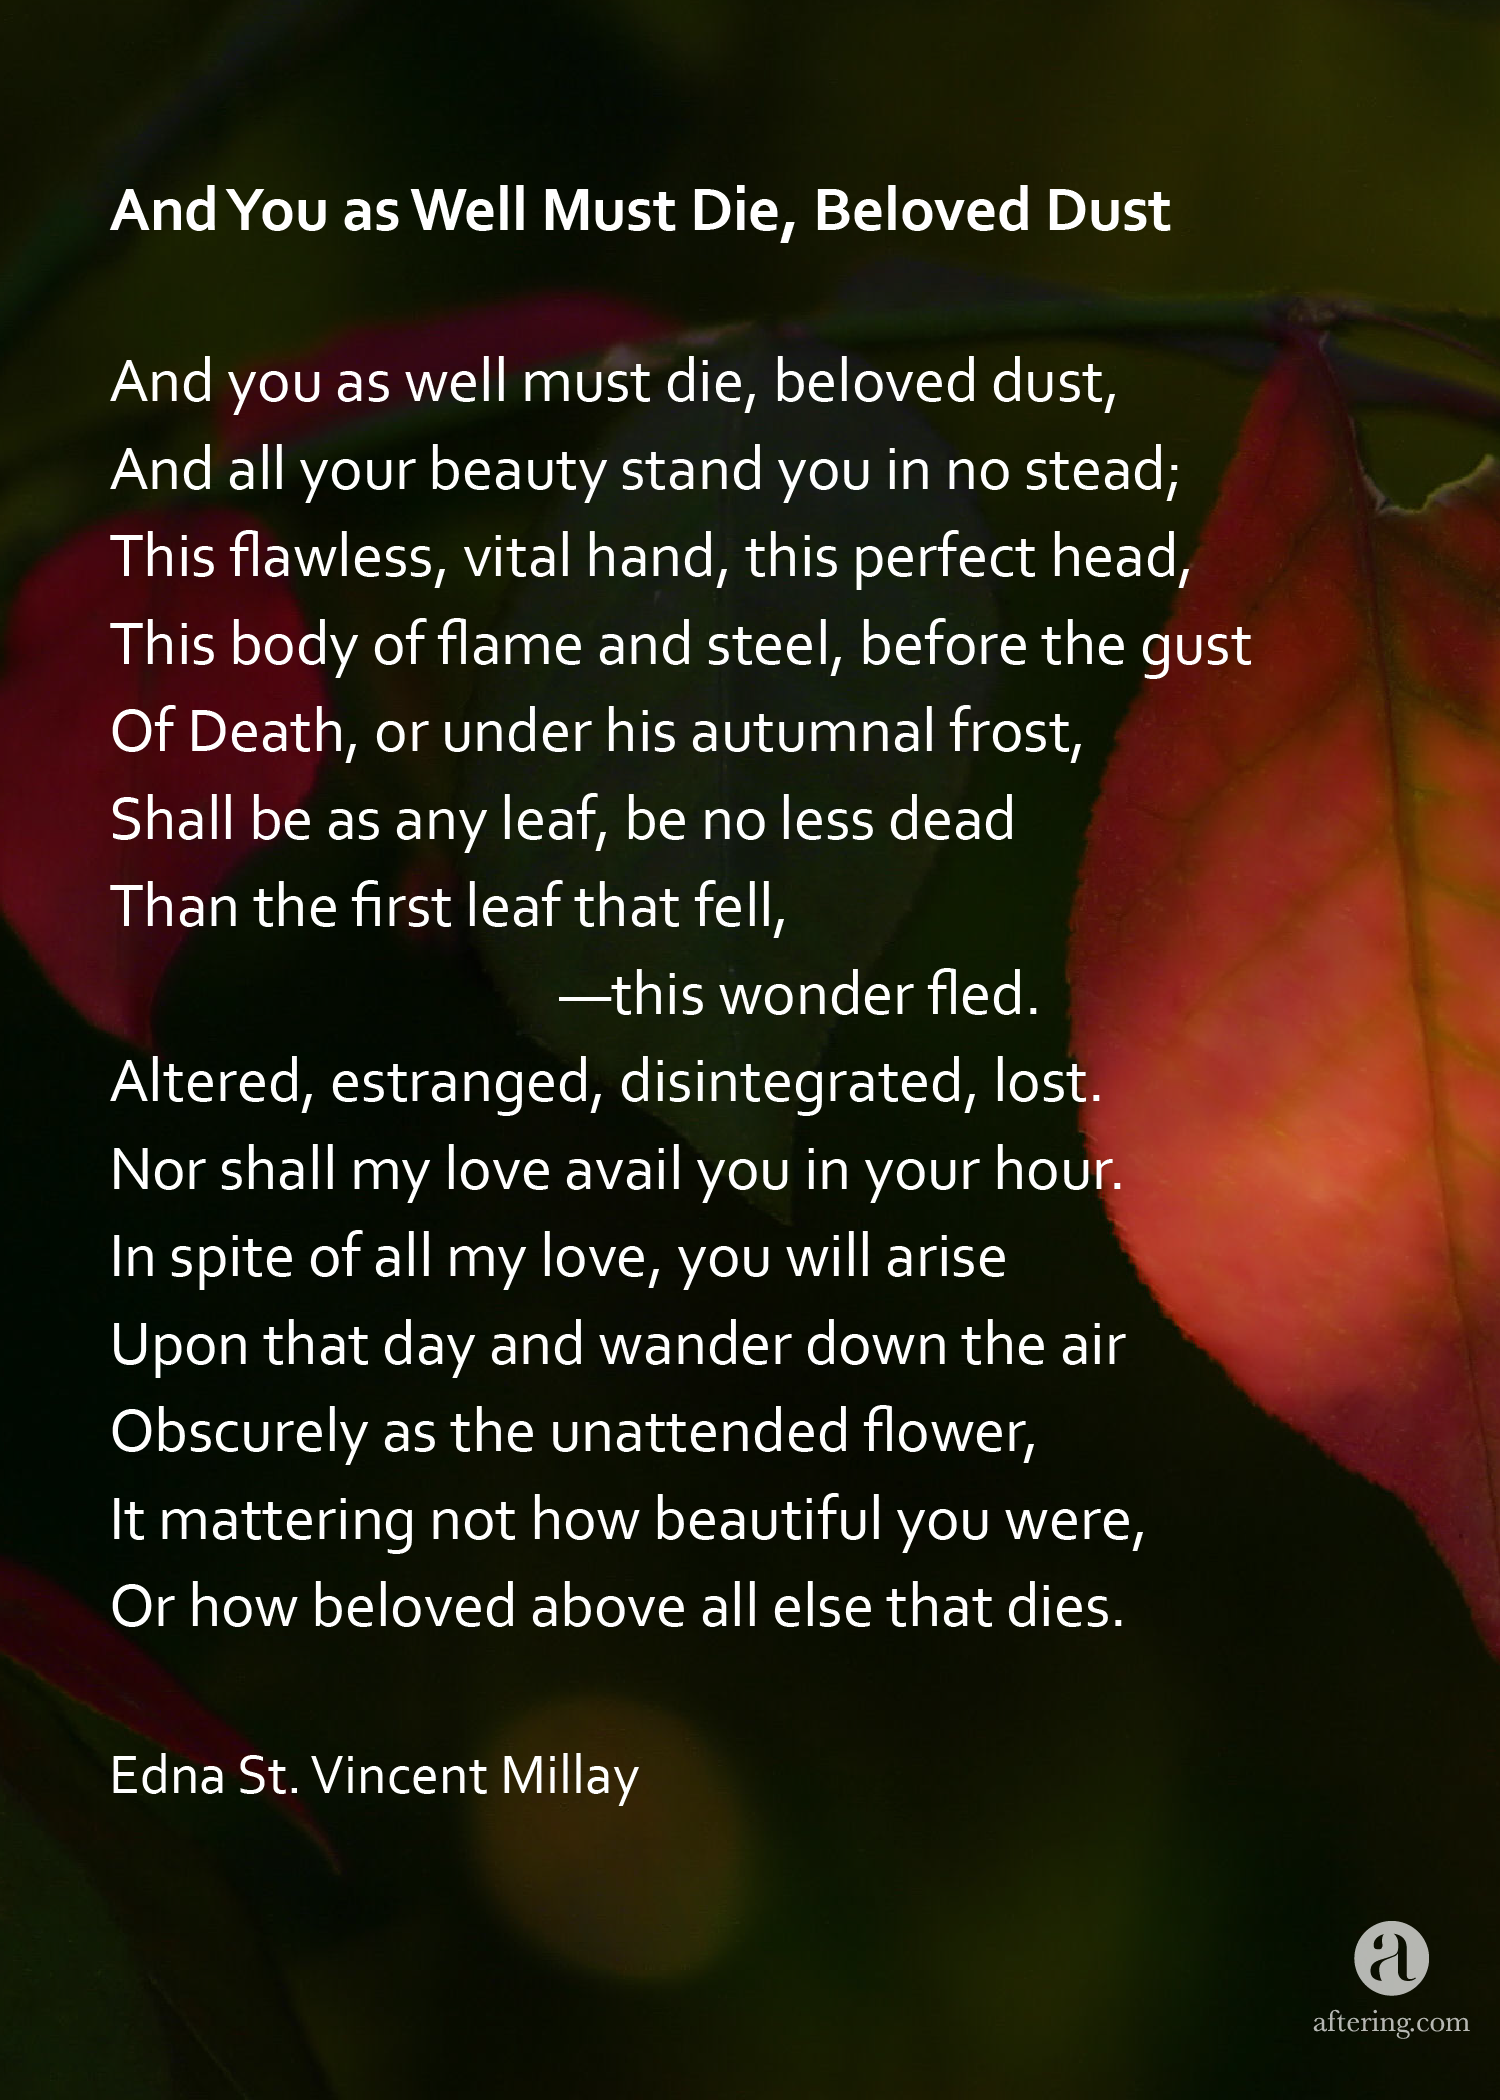 aftering-poems-and-you-as-well-must-die-full